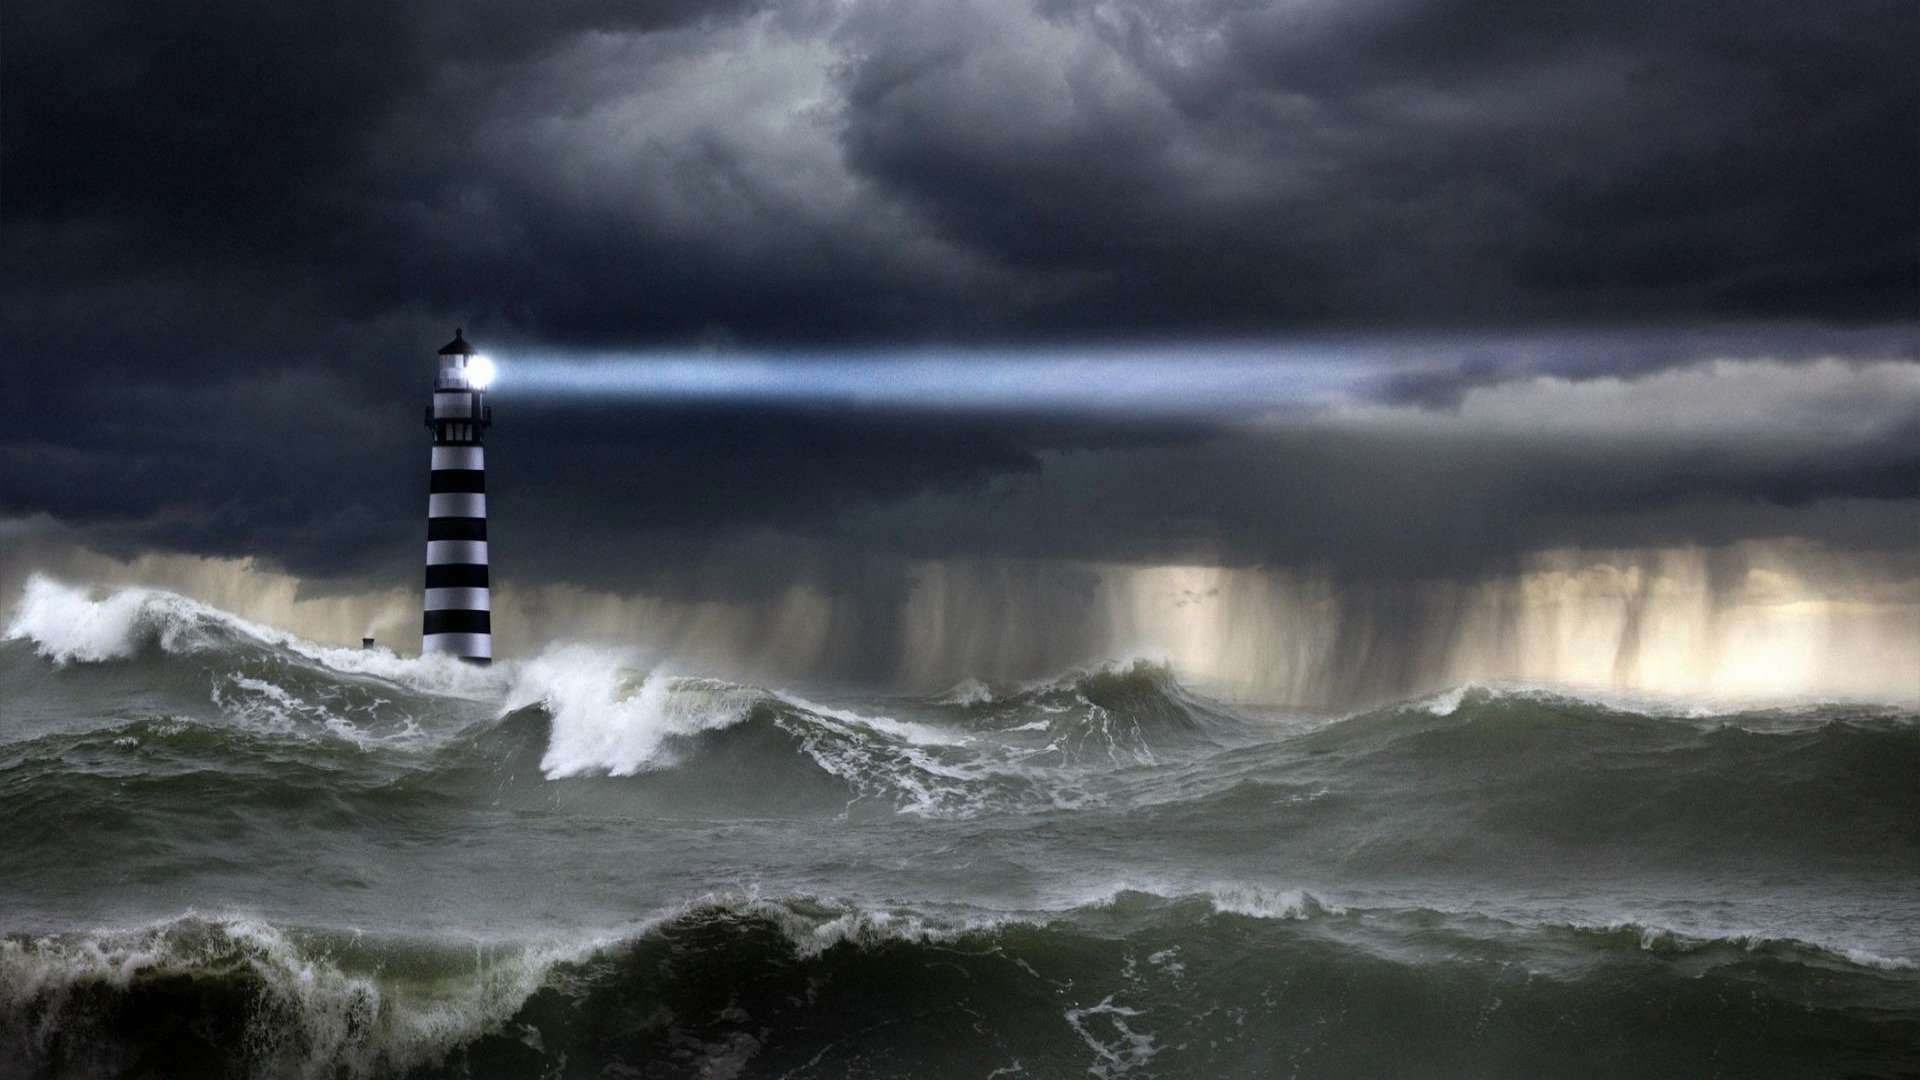 Download Lighthouse in the storm wallpaper 1920x1080